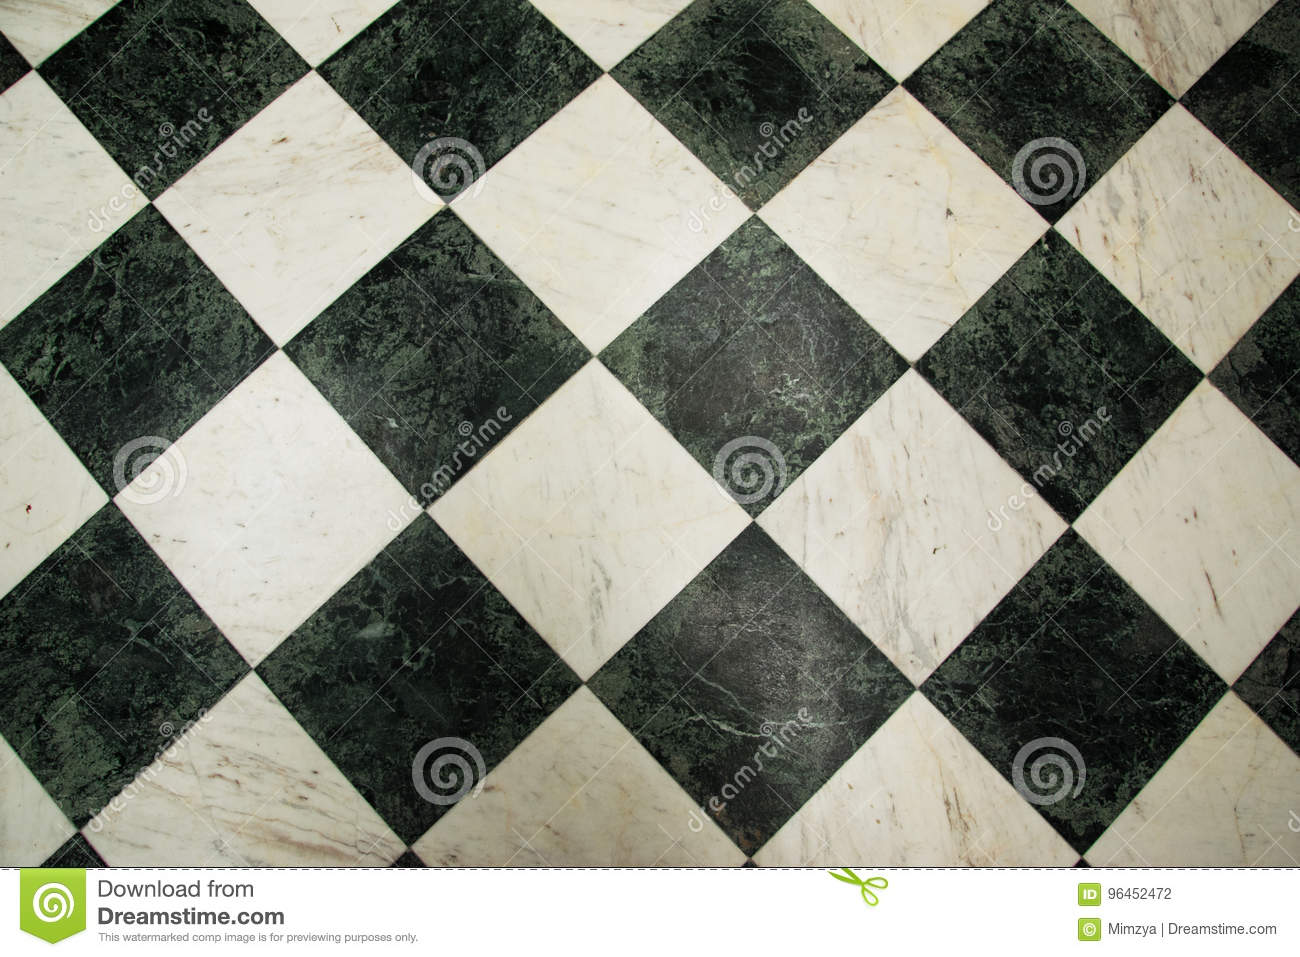 Green And White Checkered Marble Floor Pattern Stock Photo Image Of Ceramic Flooring 96452472